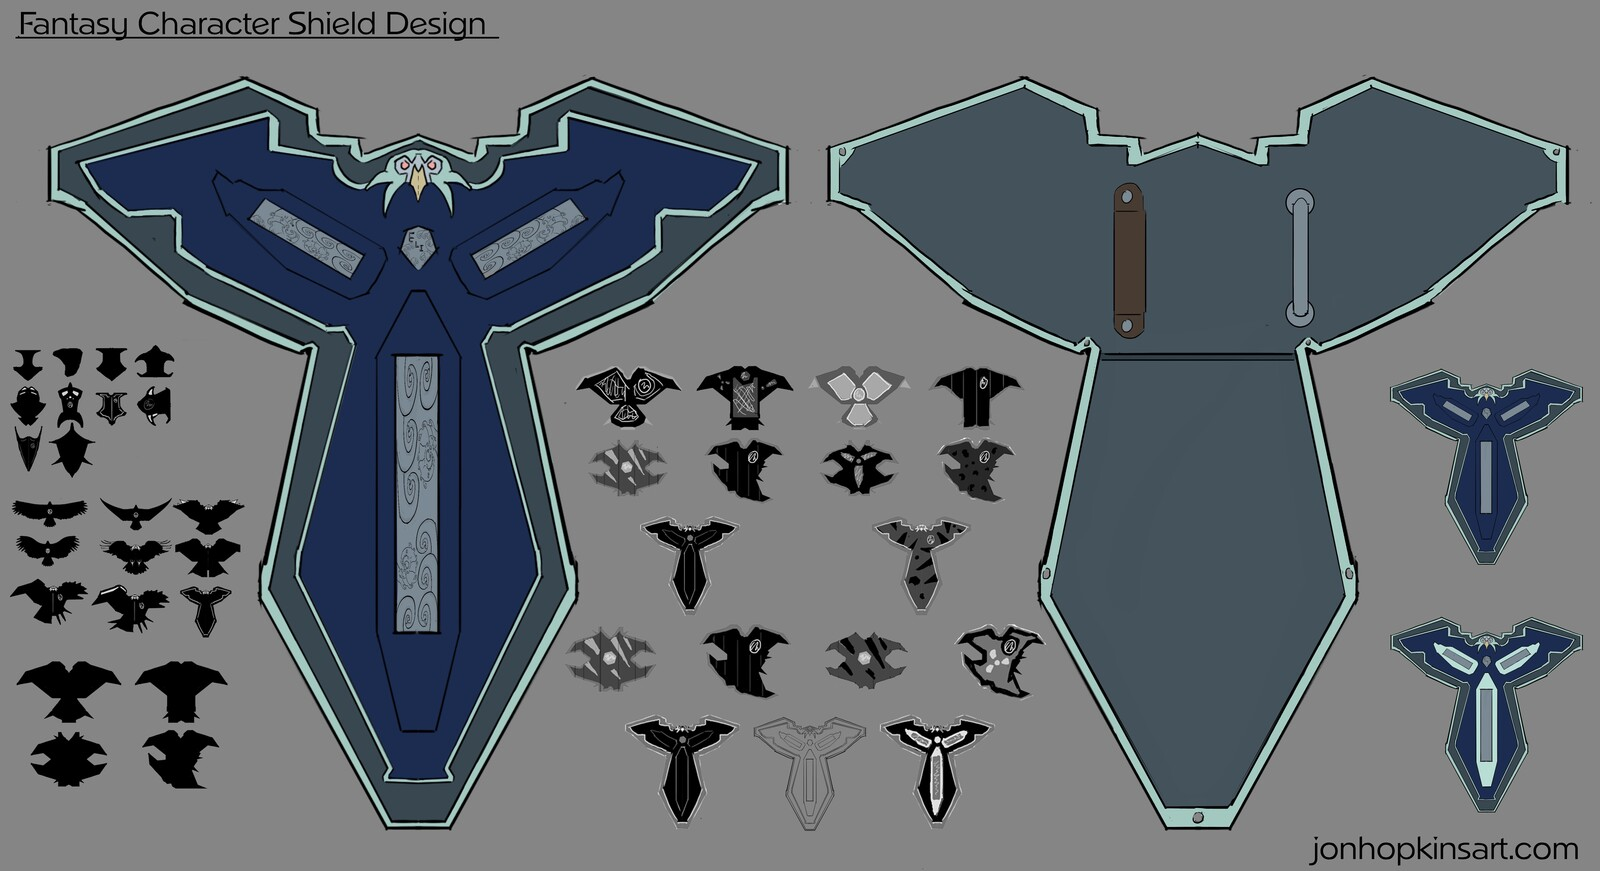 Final shield concept design